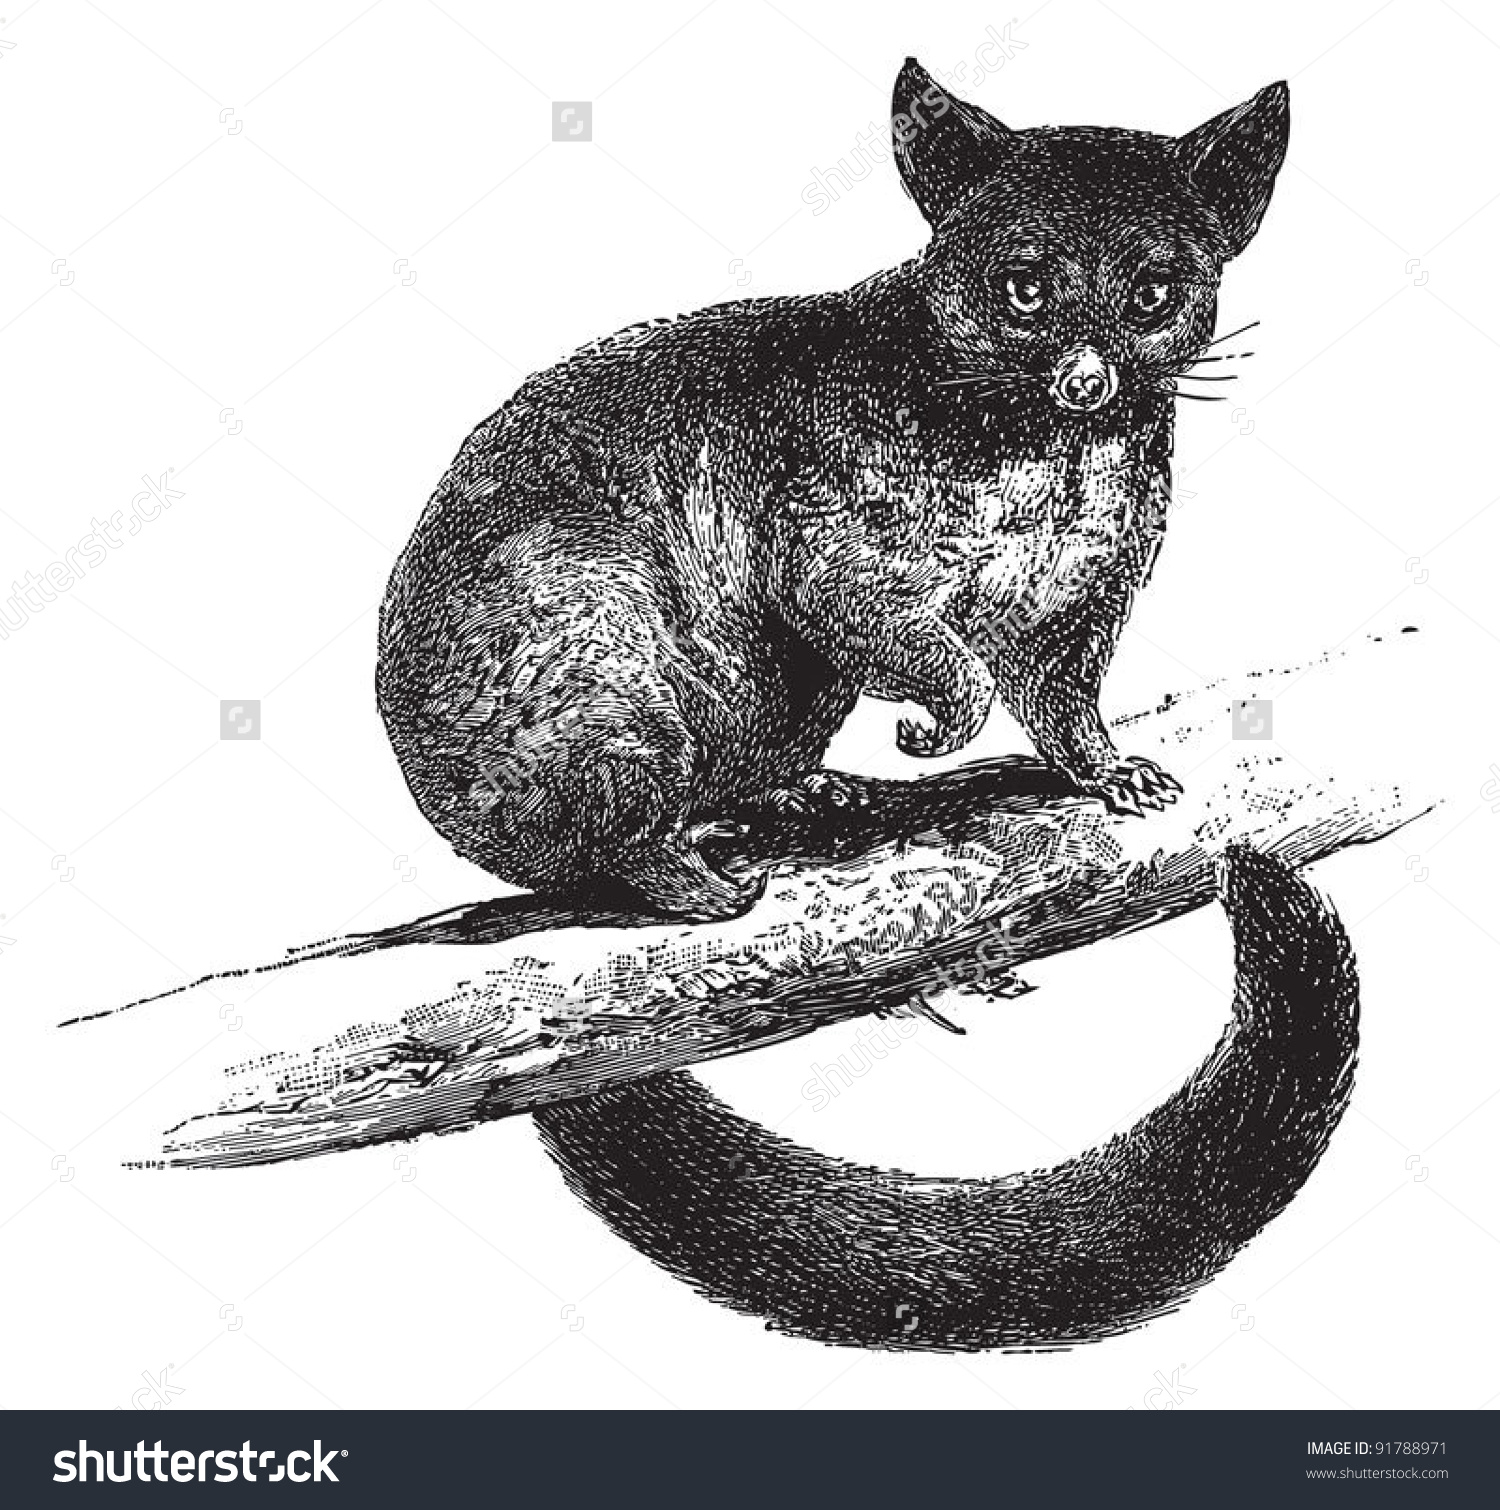 Brushtail Possum clipart #10, Download drawings